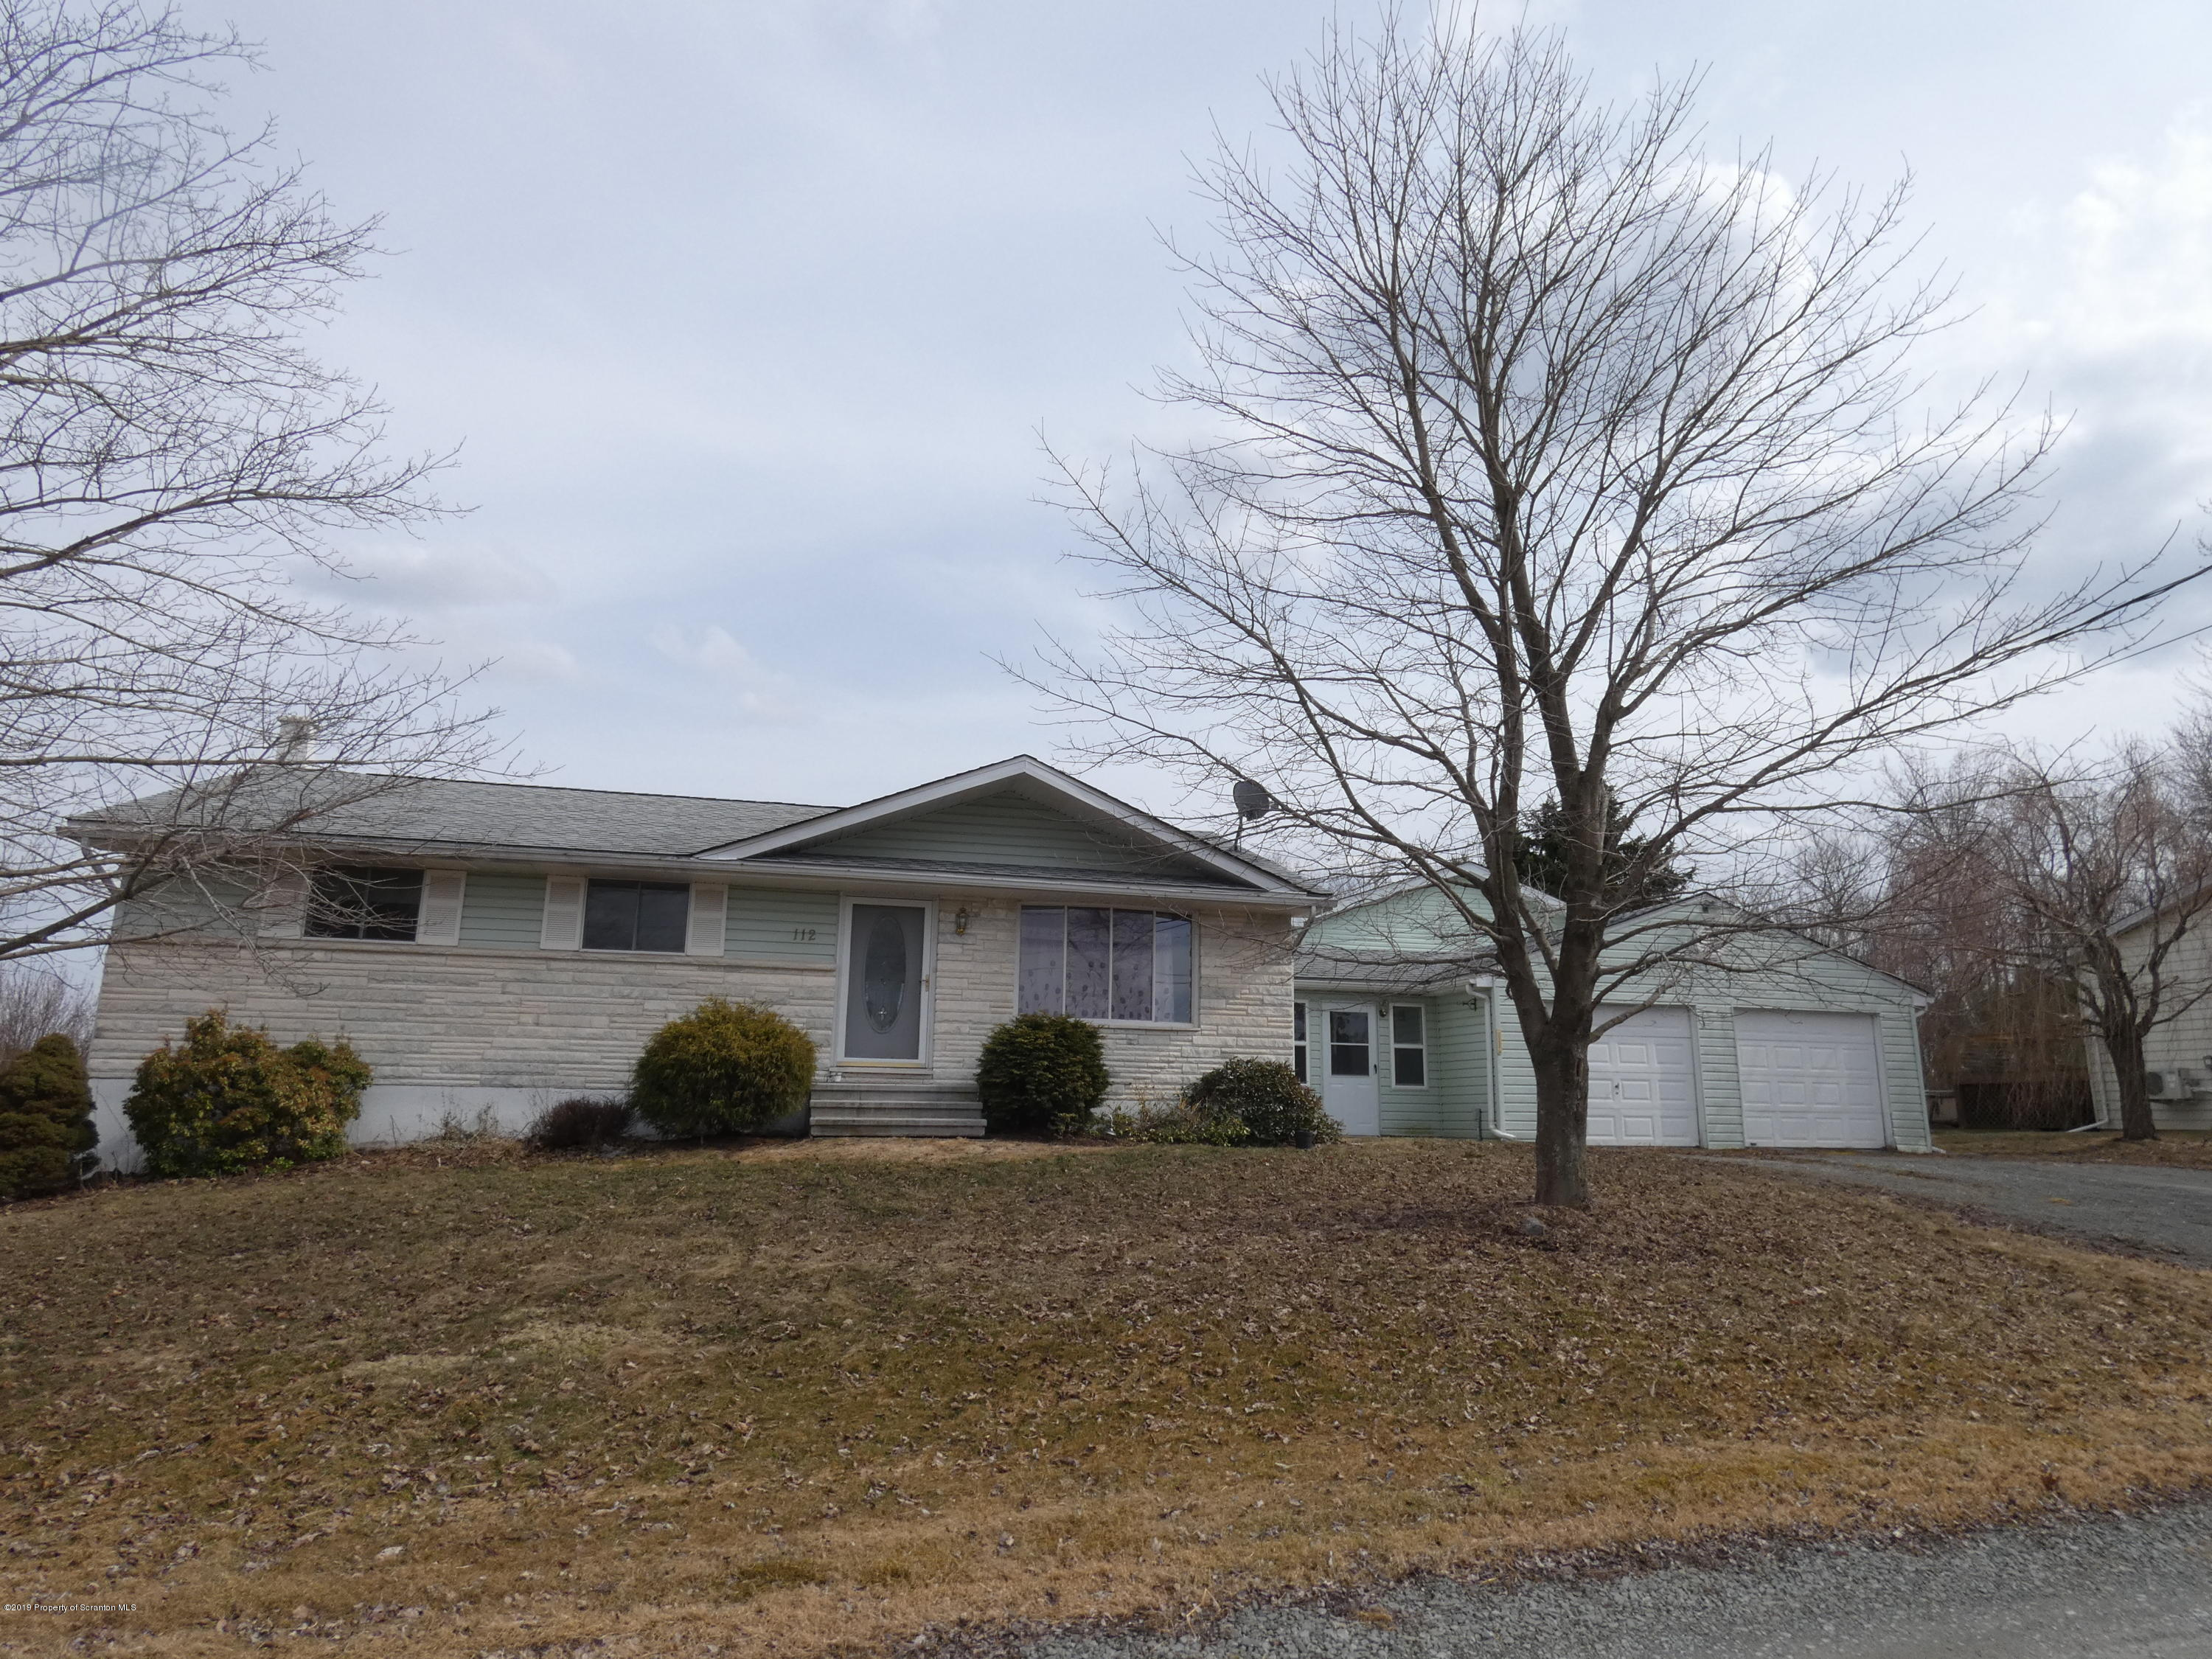 112 Crestmont Ave, Greenfield Twp, Pennsylvania 18407, 4 Bedrooms Bedrooms, 12 Rooms Rooms,3 BathroomsBathrooms,Single Family,For Sale,Crestmont,19-1435